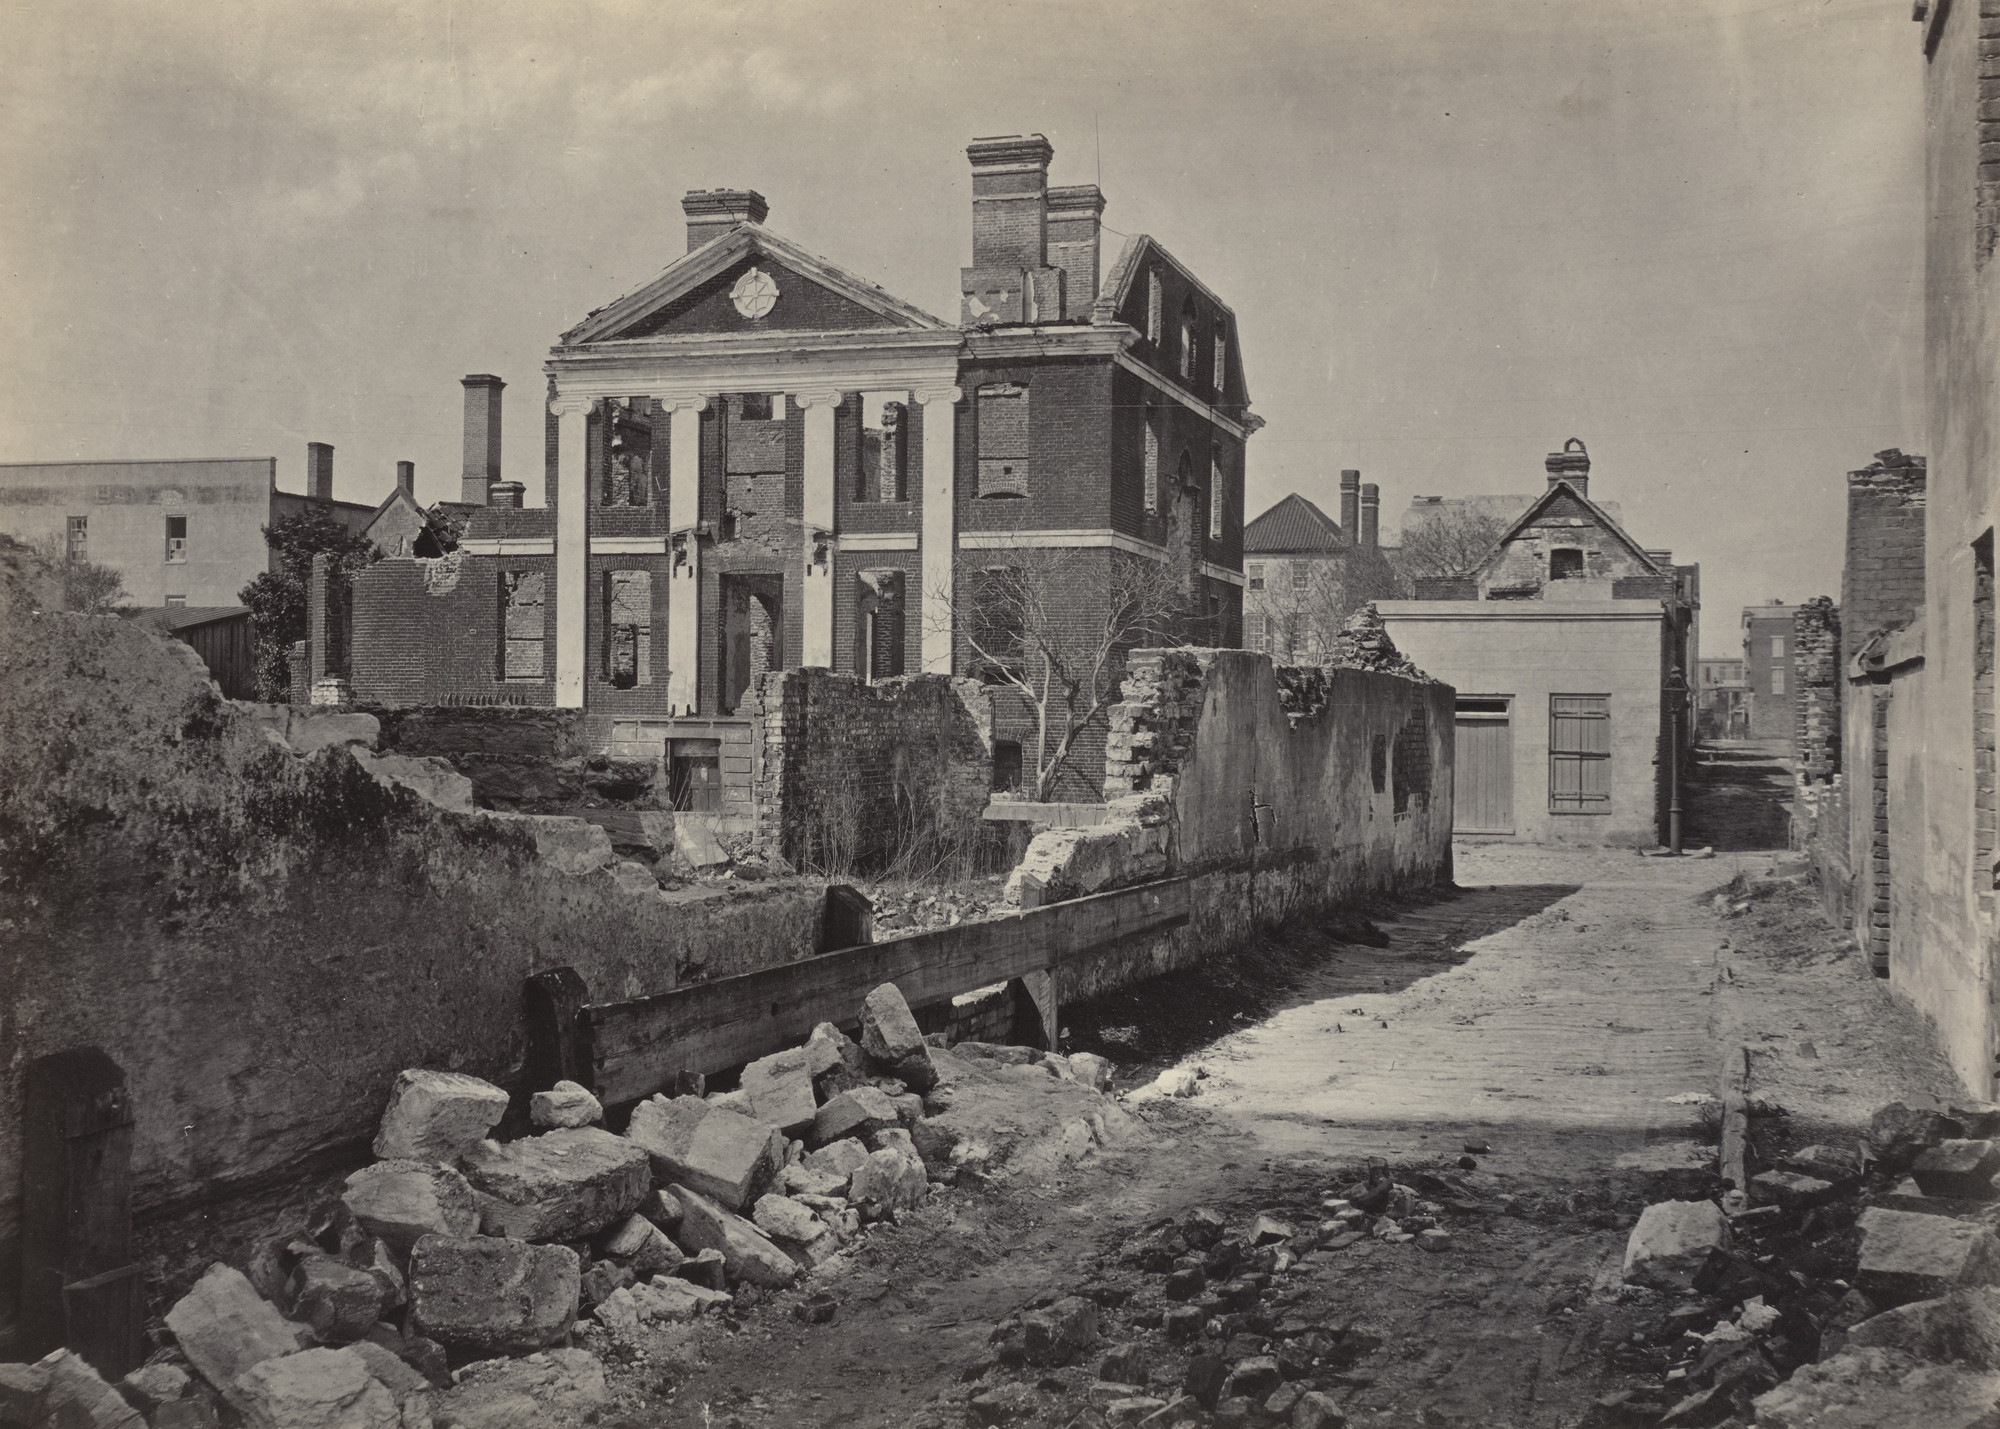 George Barnard. Ruins of the Pinckney Mansion, Charleston from the album Photographic Views of Sherman's Campaign. 1864-65